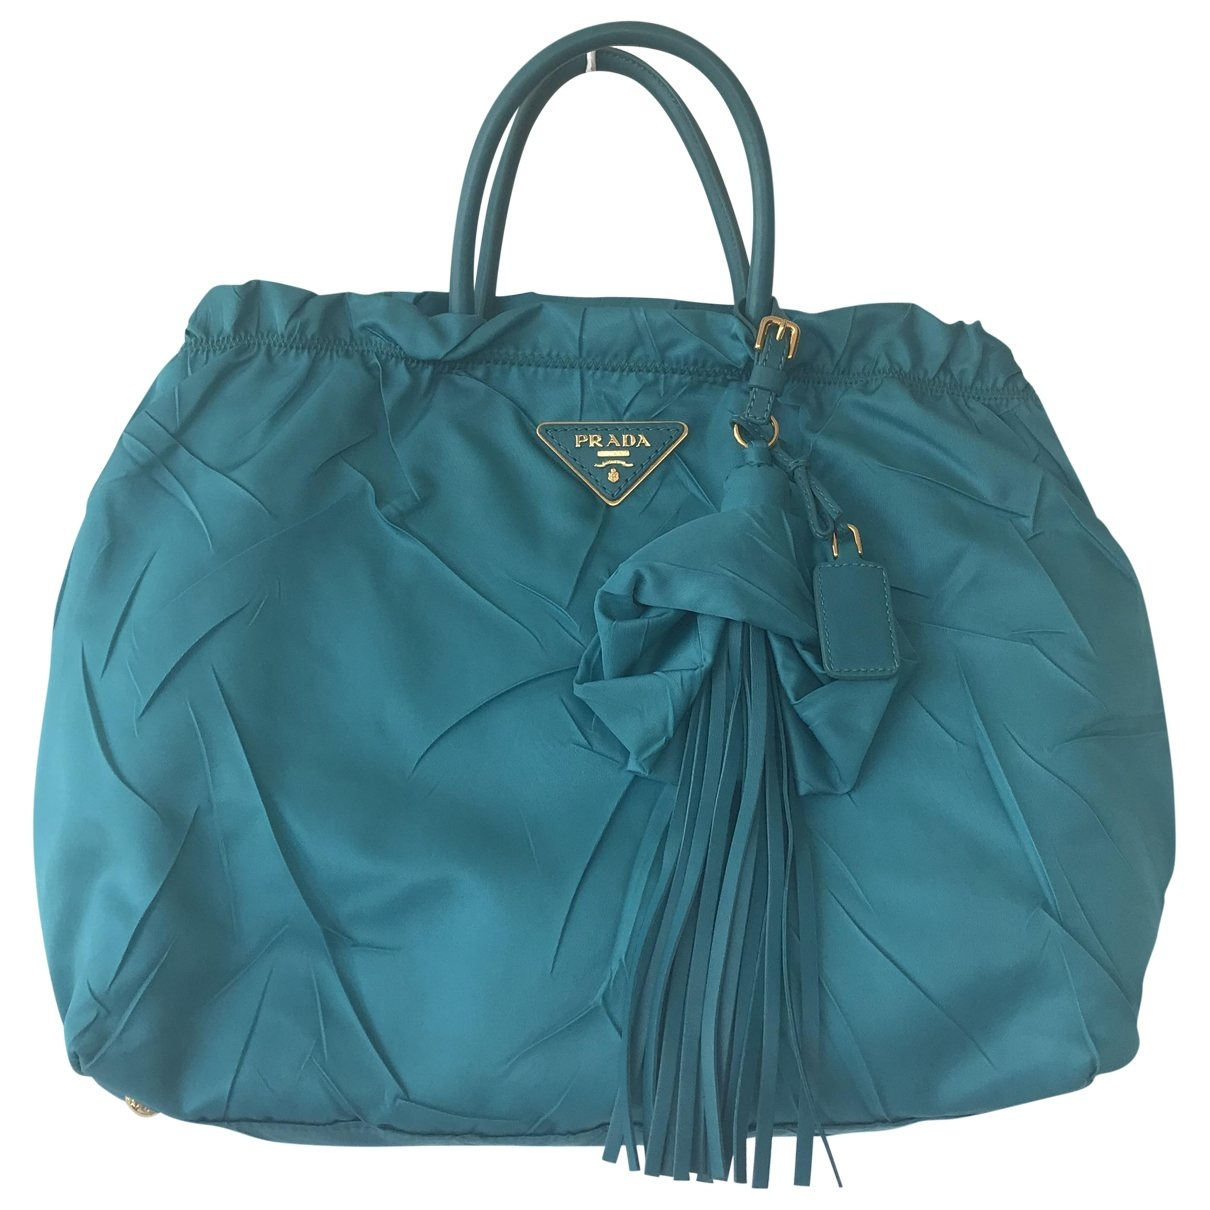 Prada \N Turquoise Cloth handbag for Women \N